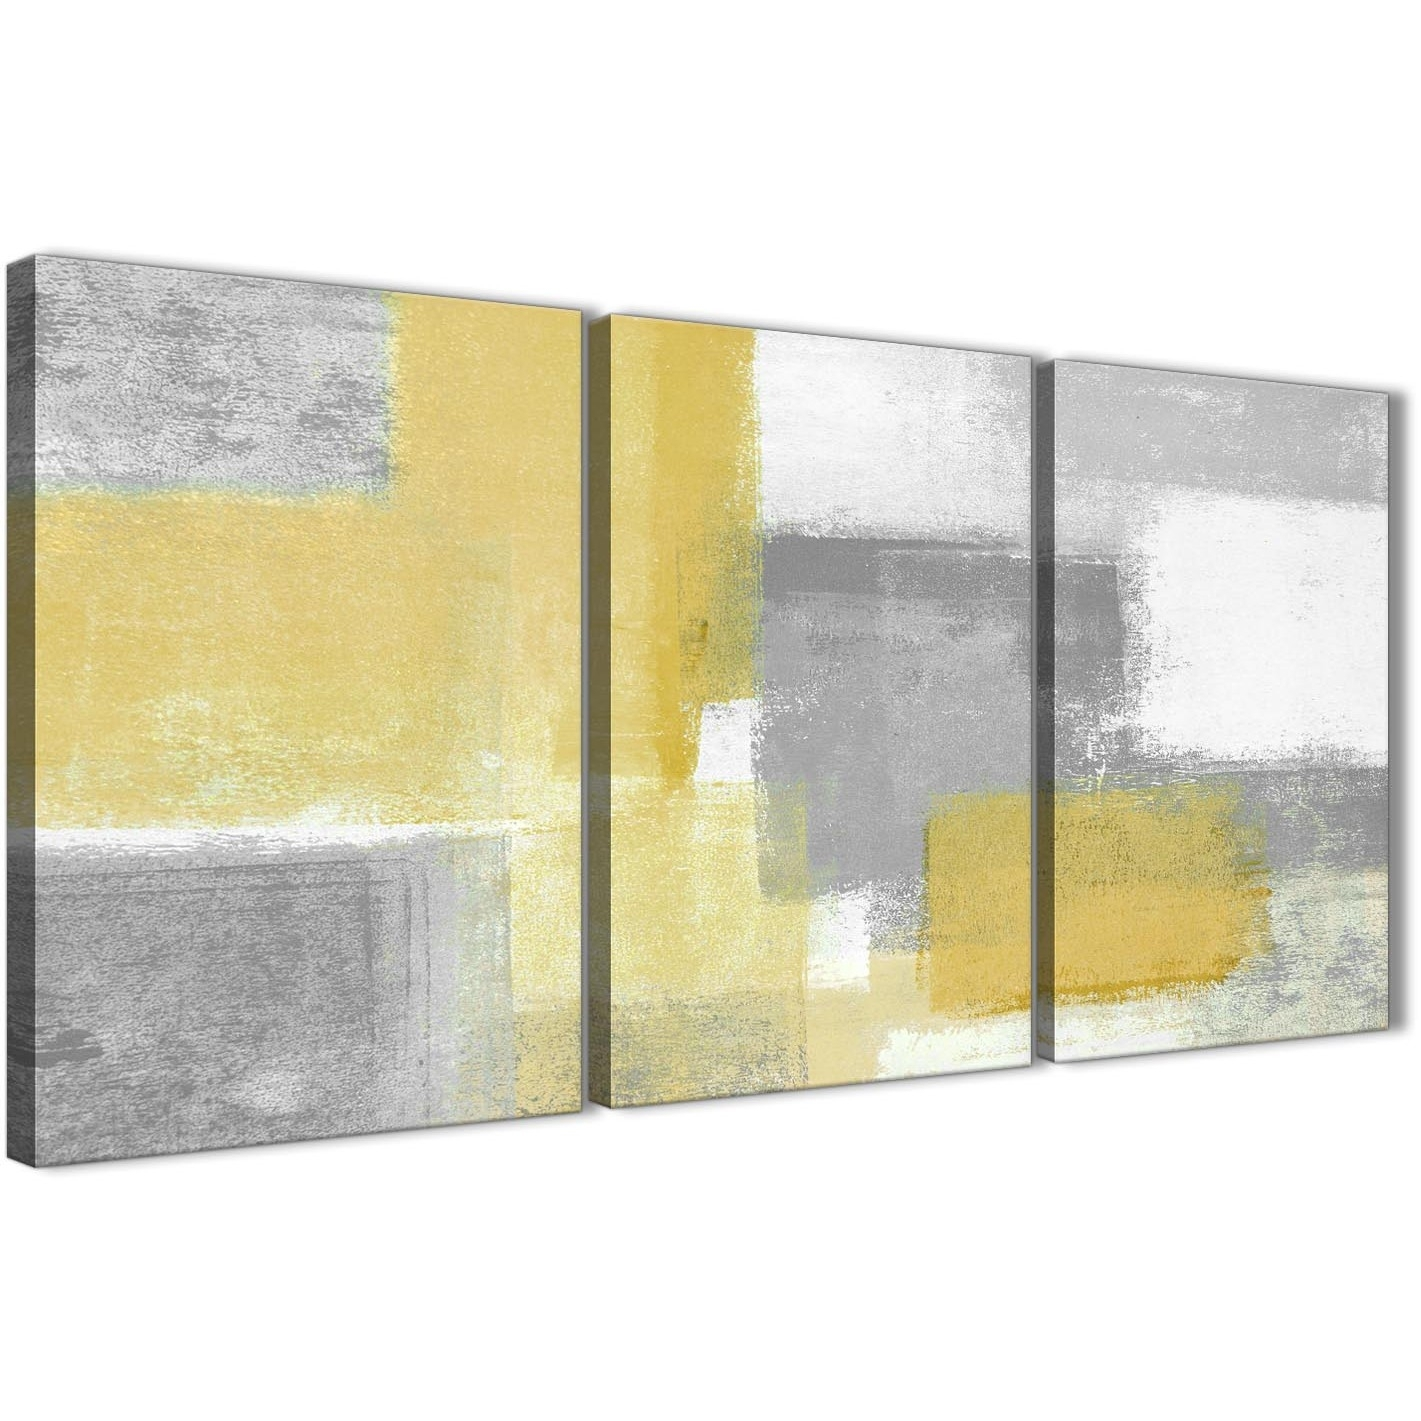 3 Panel Mustard Yellow Grey Kitchen Canvas Wall Art Decor – Abstract Throughout Latest Canvas Wall Art (Gallery 5 of 15)